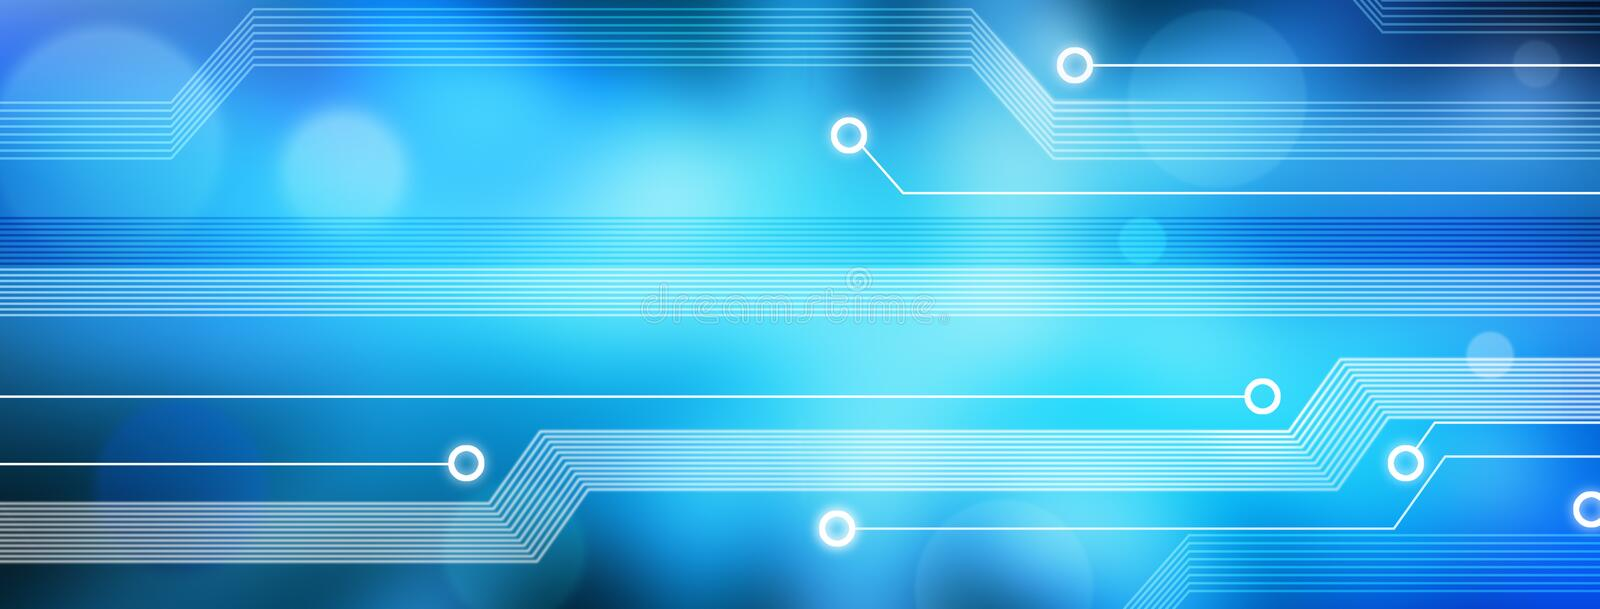 Computer Technology Information Data Banner Background royalty free illustration